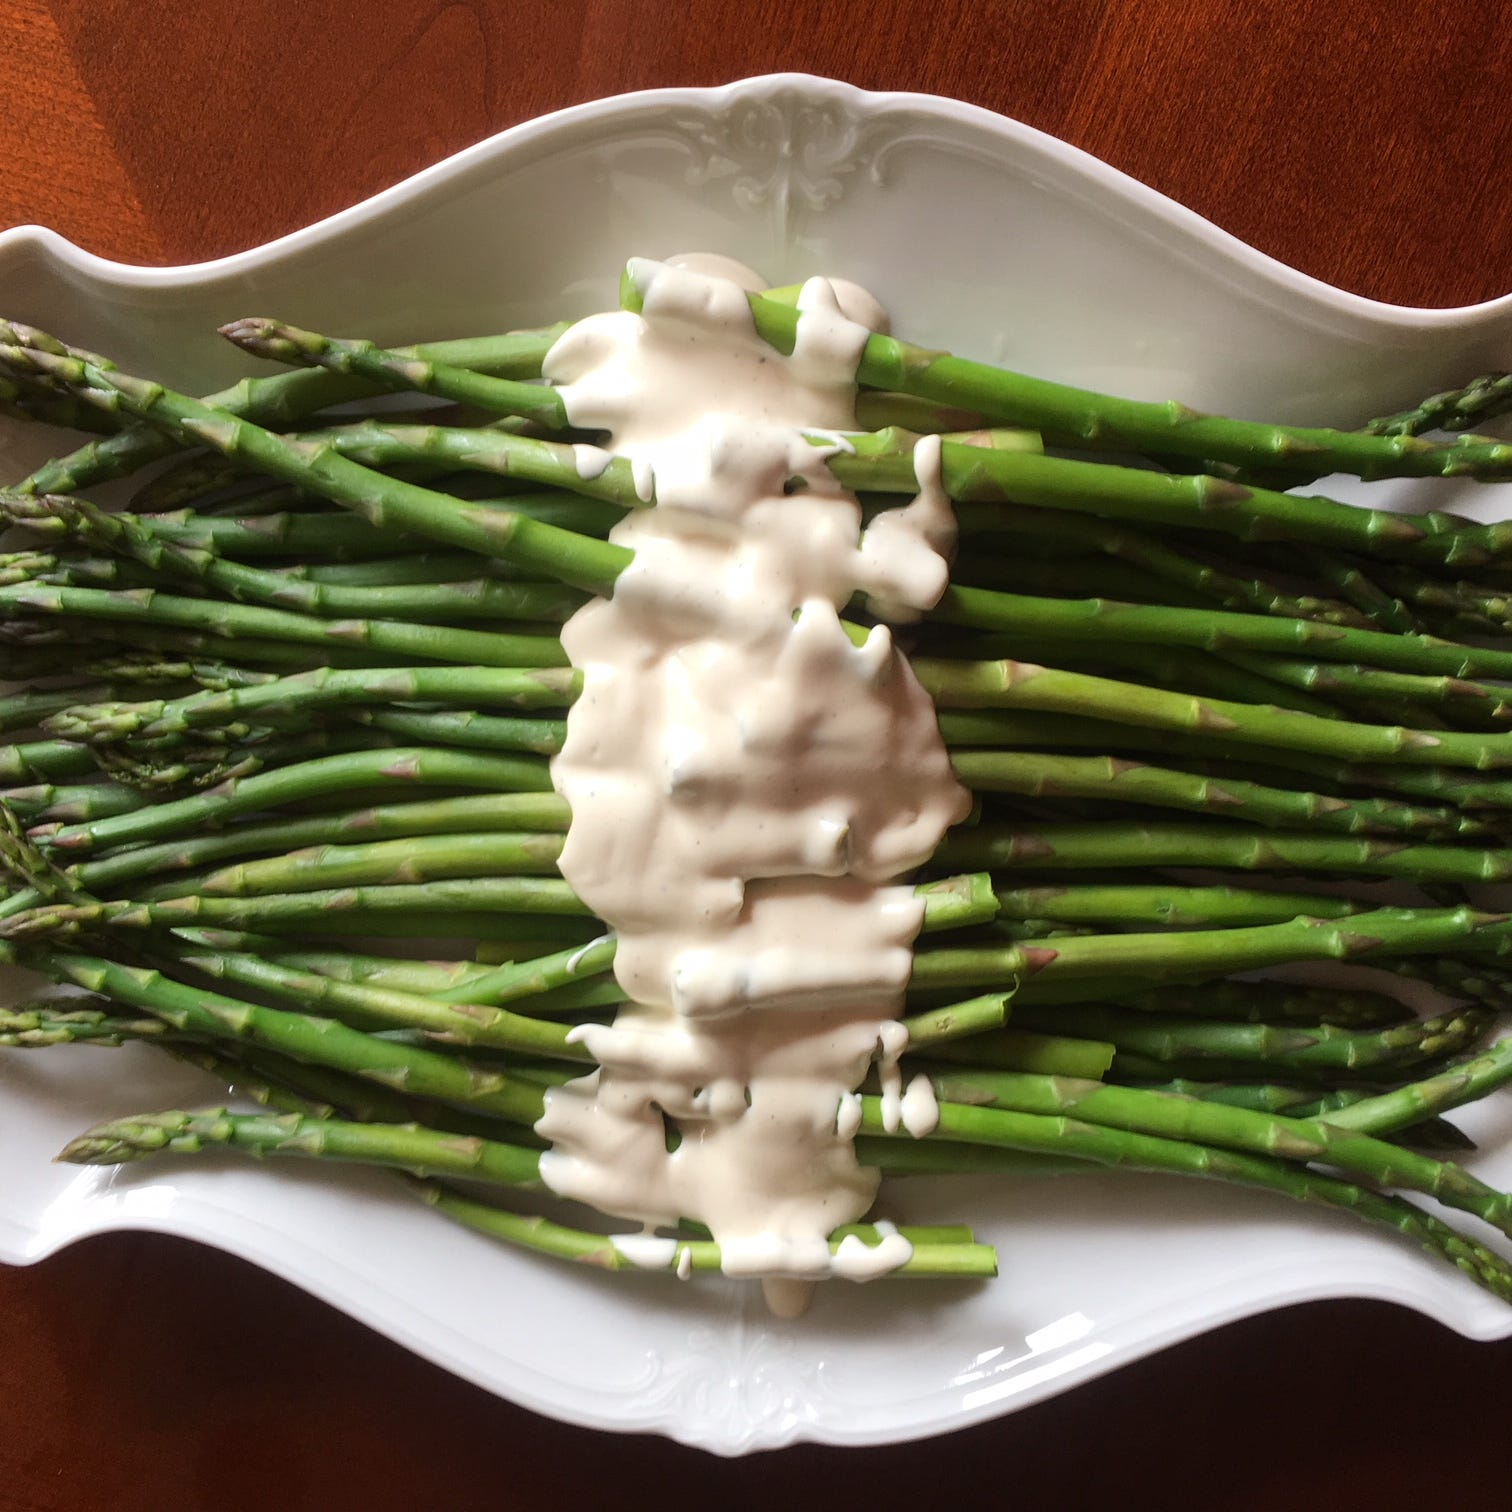 Load up on asparagus for its healthy dose of folate